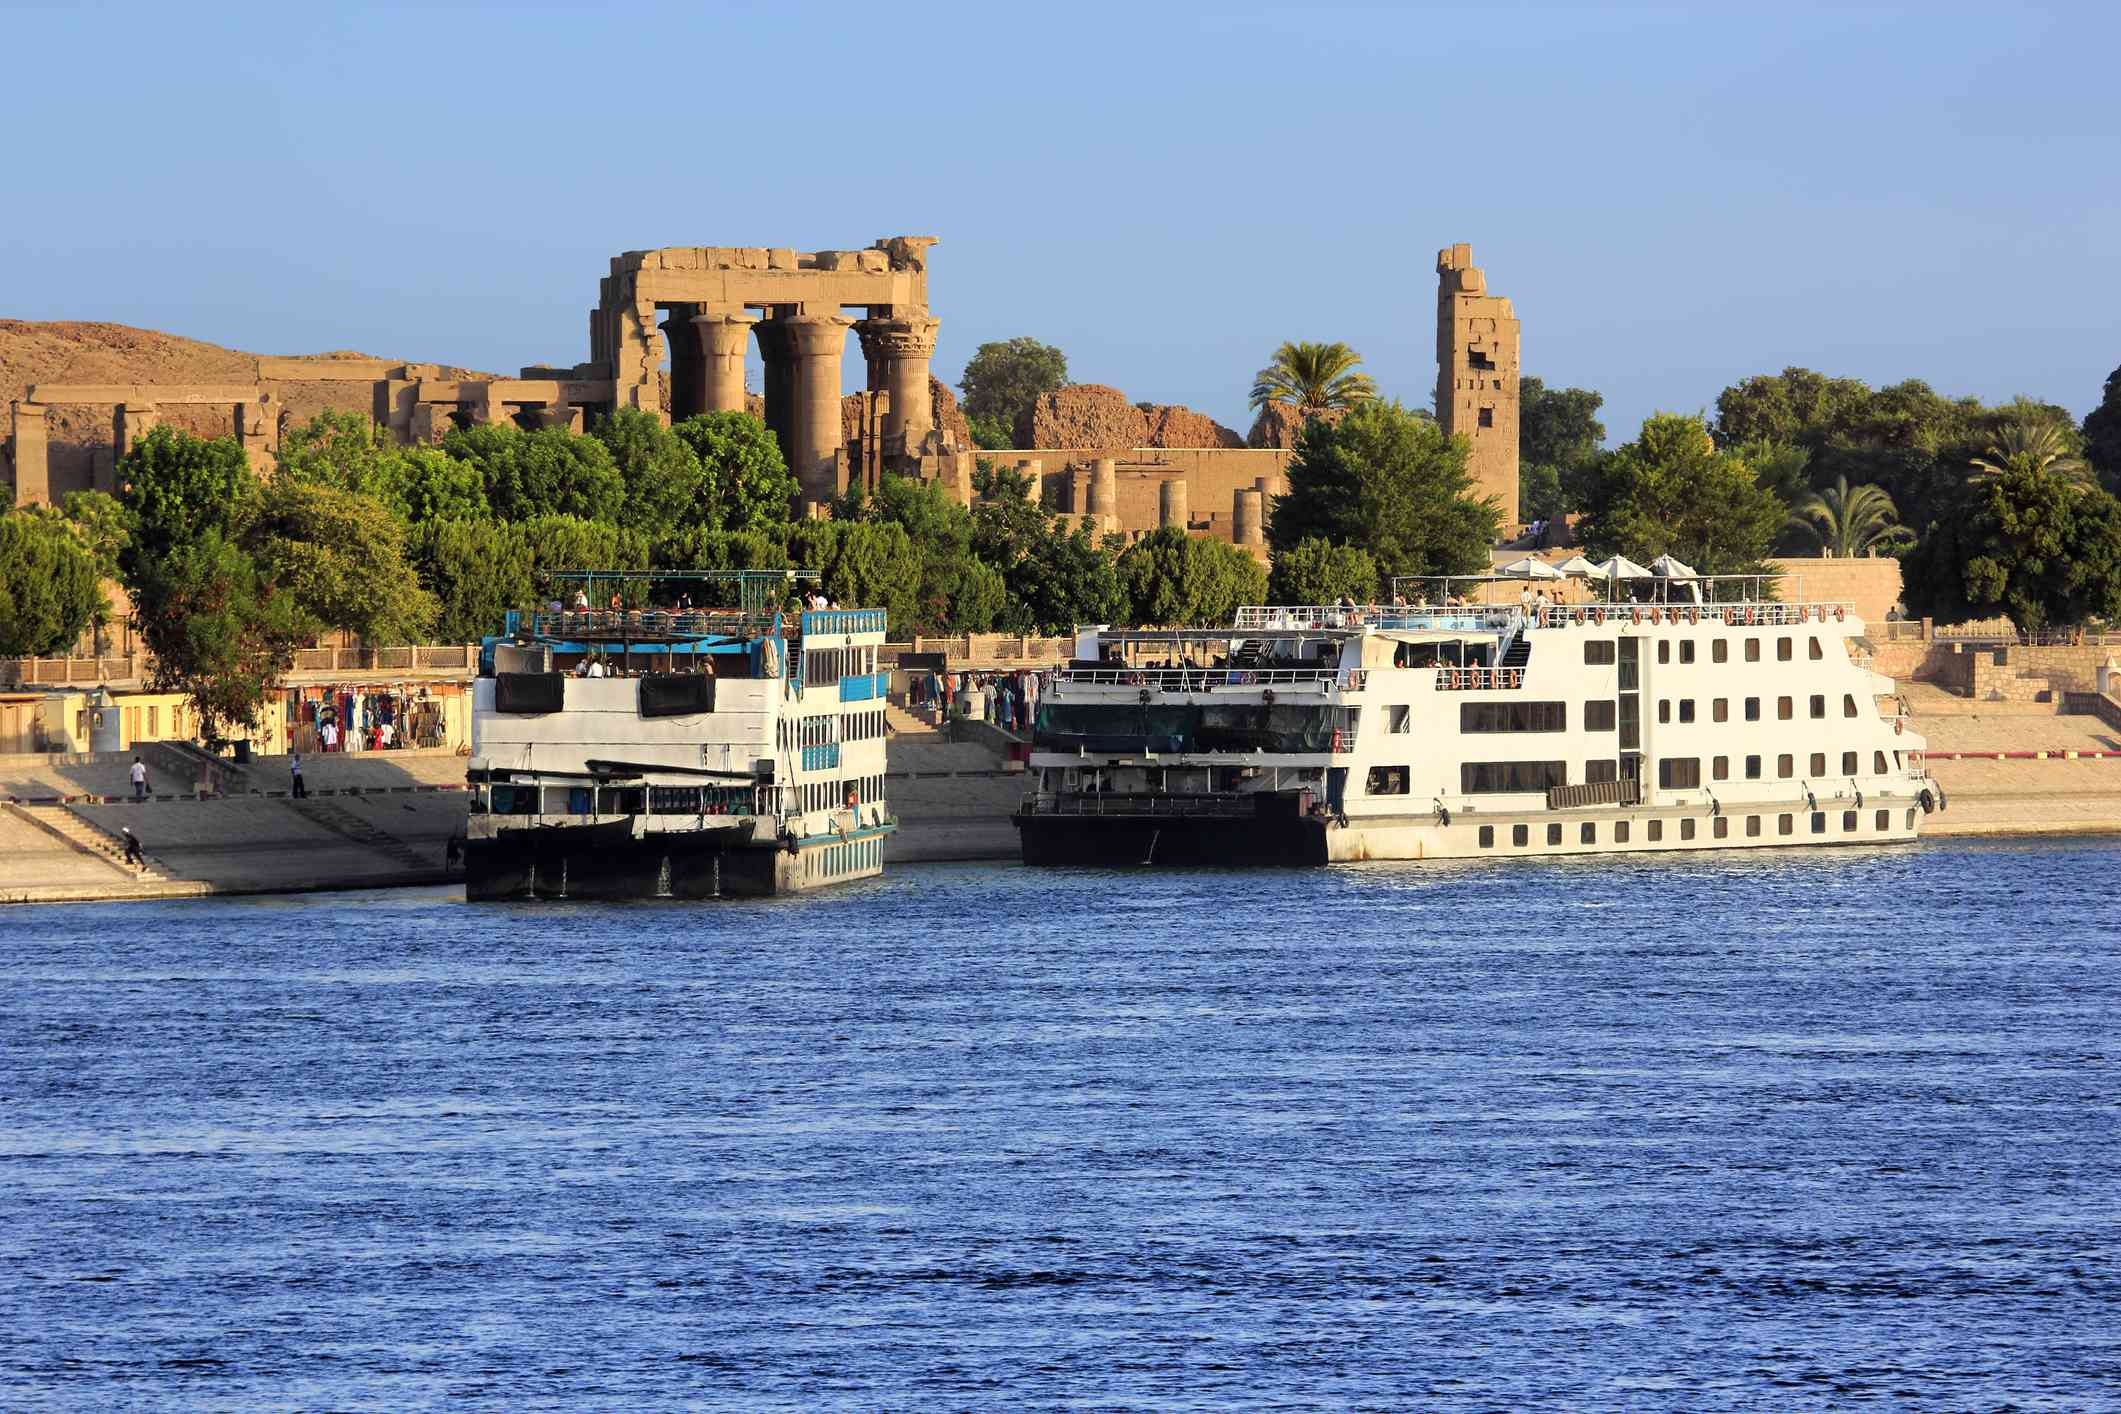 Nile cruise ships in front of the Temple of Kom Ombo